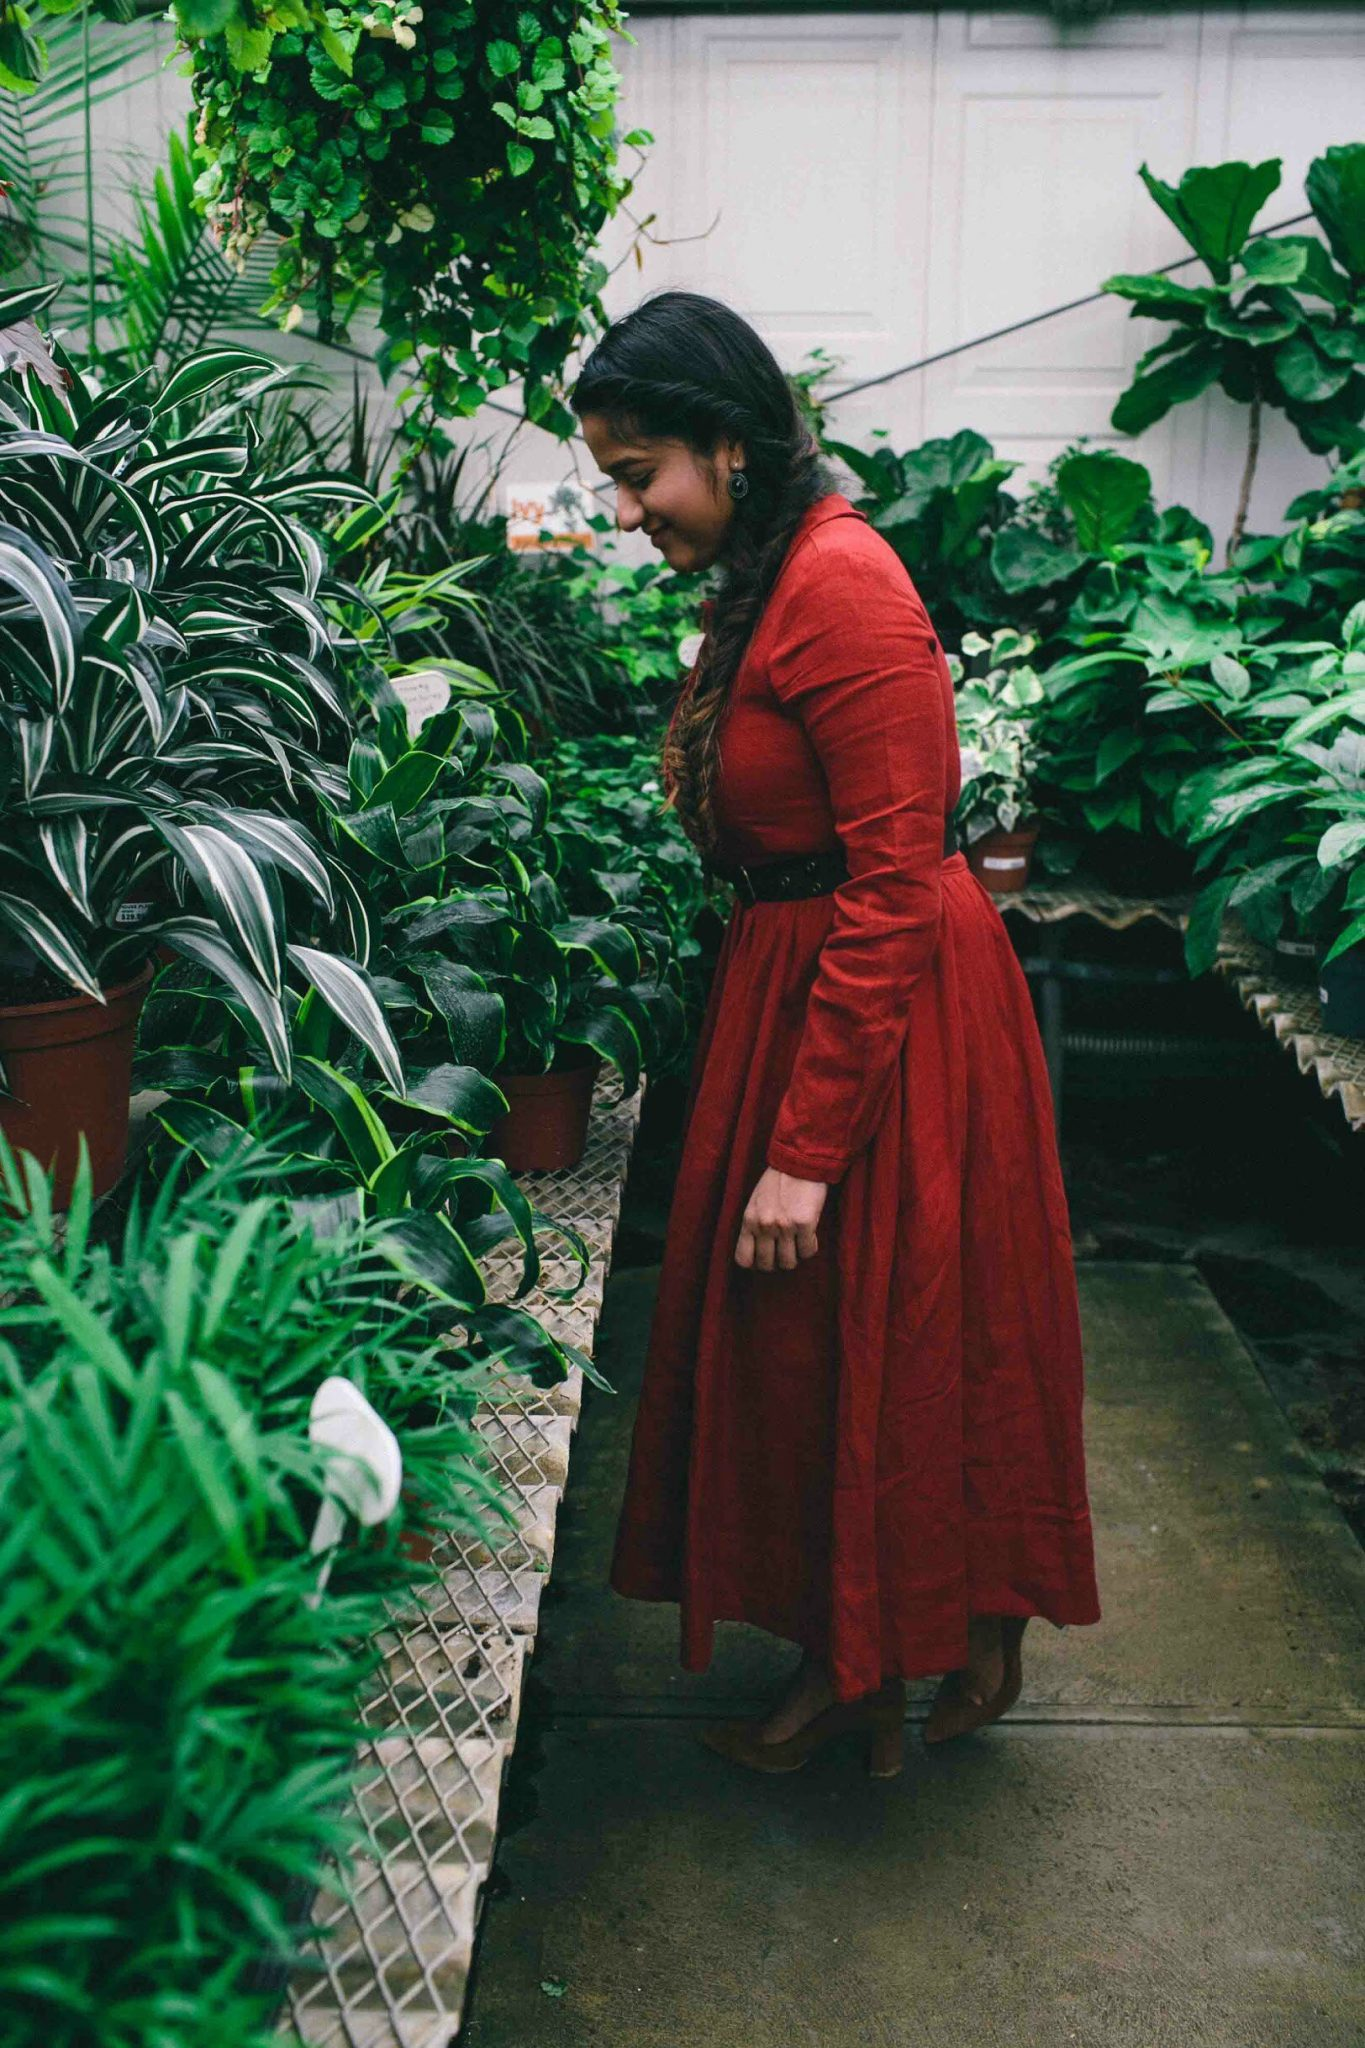 Modest Fashion and Lifestyle Blog dreaming loud wearing Son de flor classic dress long sleeve red poppy dress with Ralph Lauren Polo Leather belt - Son de Flor Classic Linen Dress styled by popular modest fashion blogger, Dreaming Loud.